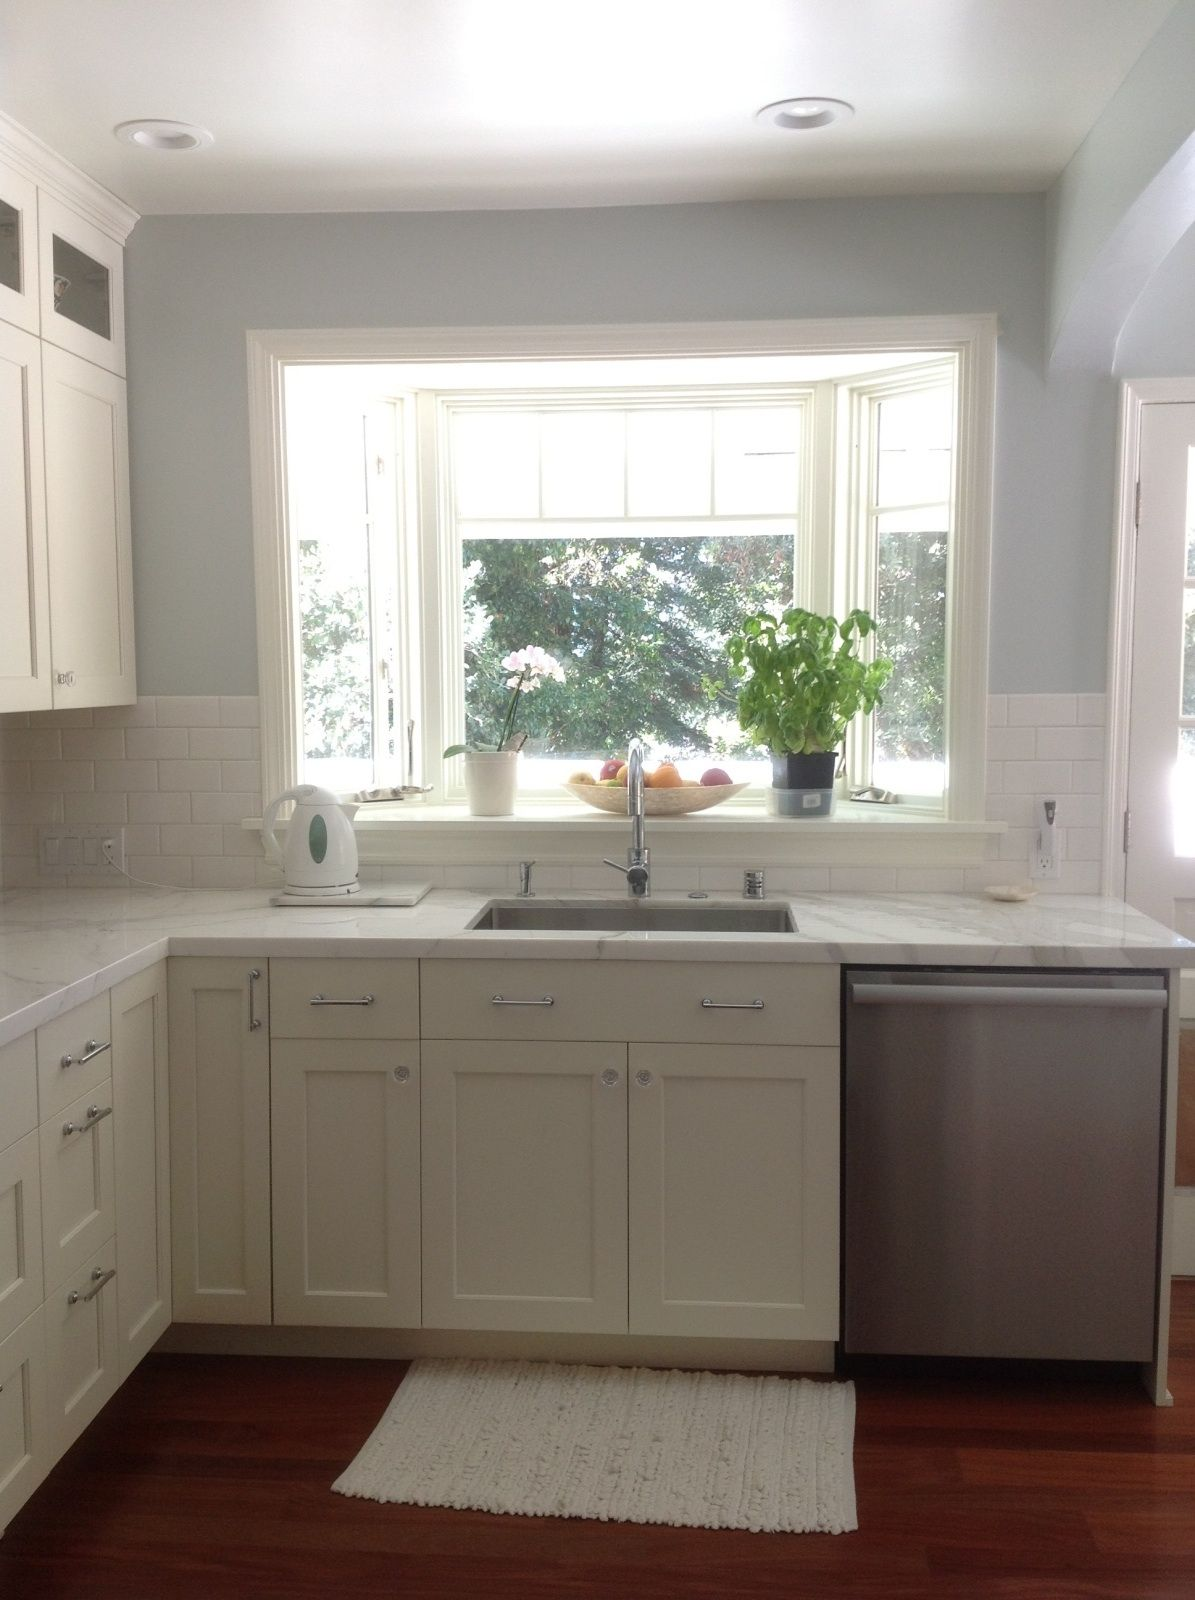 No window kitchen sink  save for future kitchen and house renovation ideas i like placement